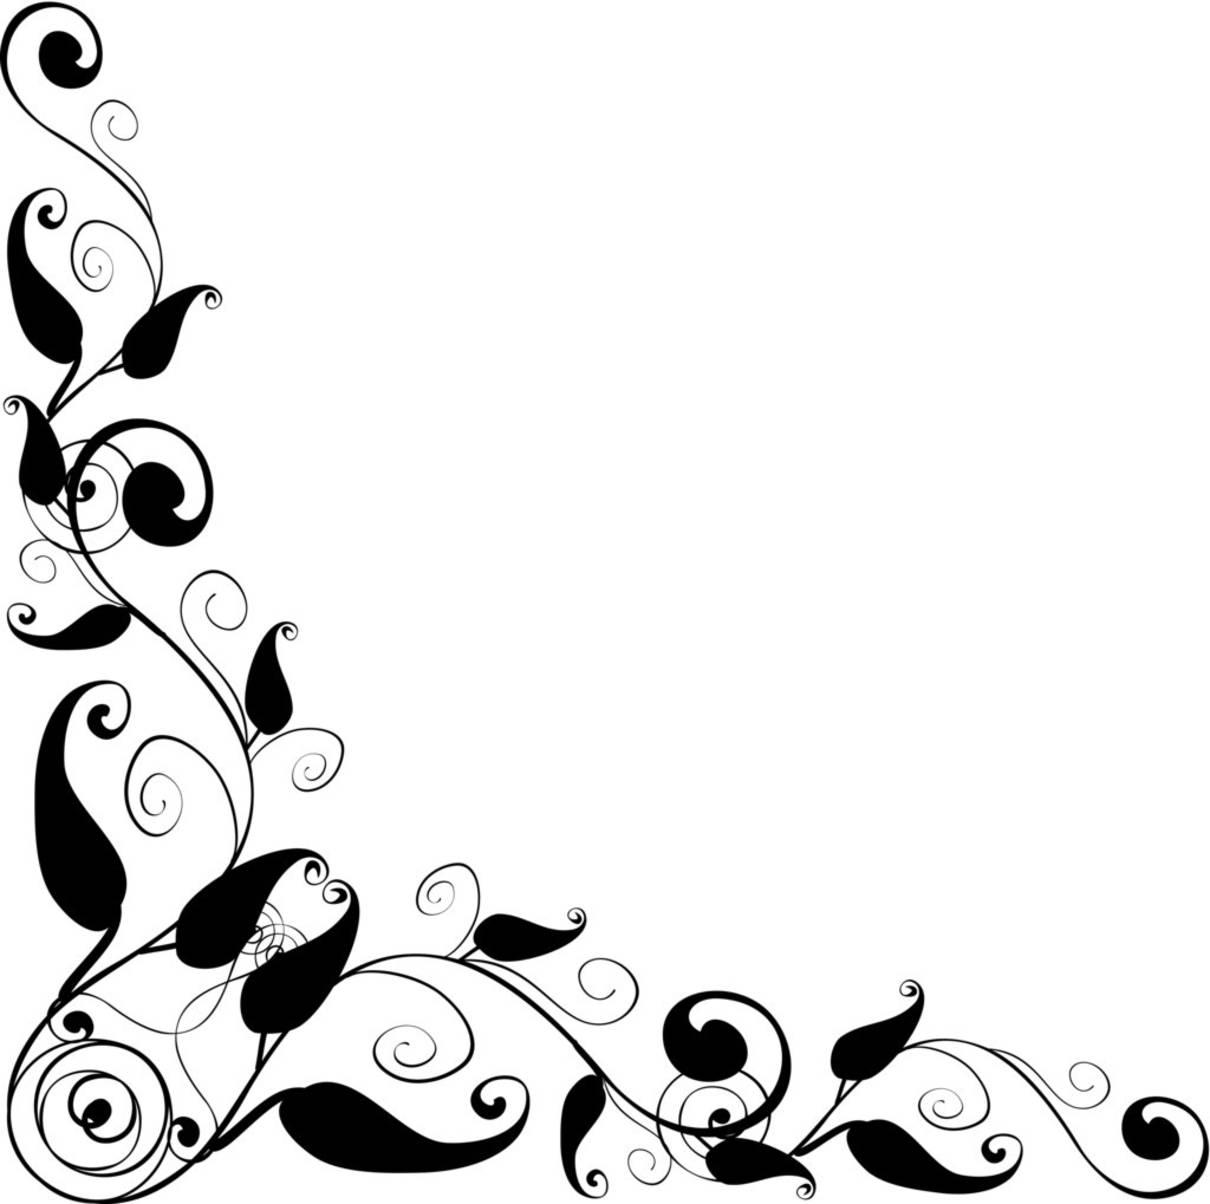 Png Flower Border Black Free Border Design Black And White Download Free Clip Art Free